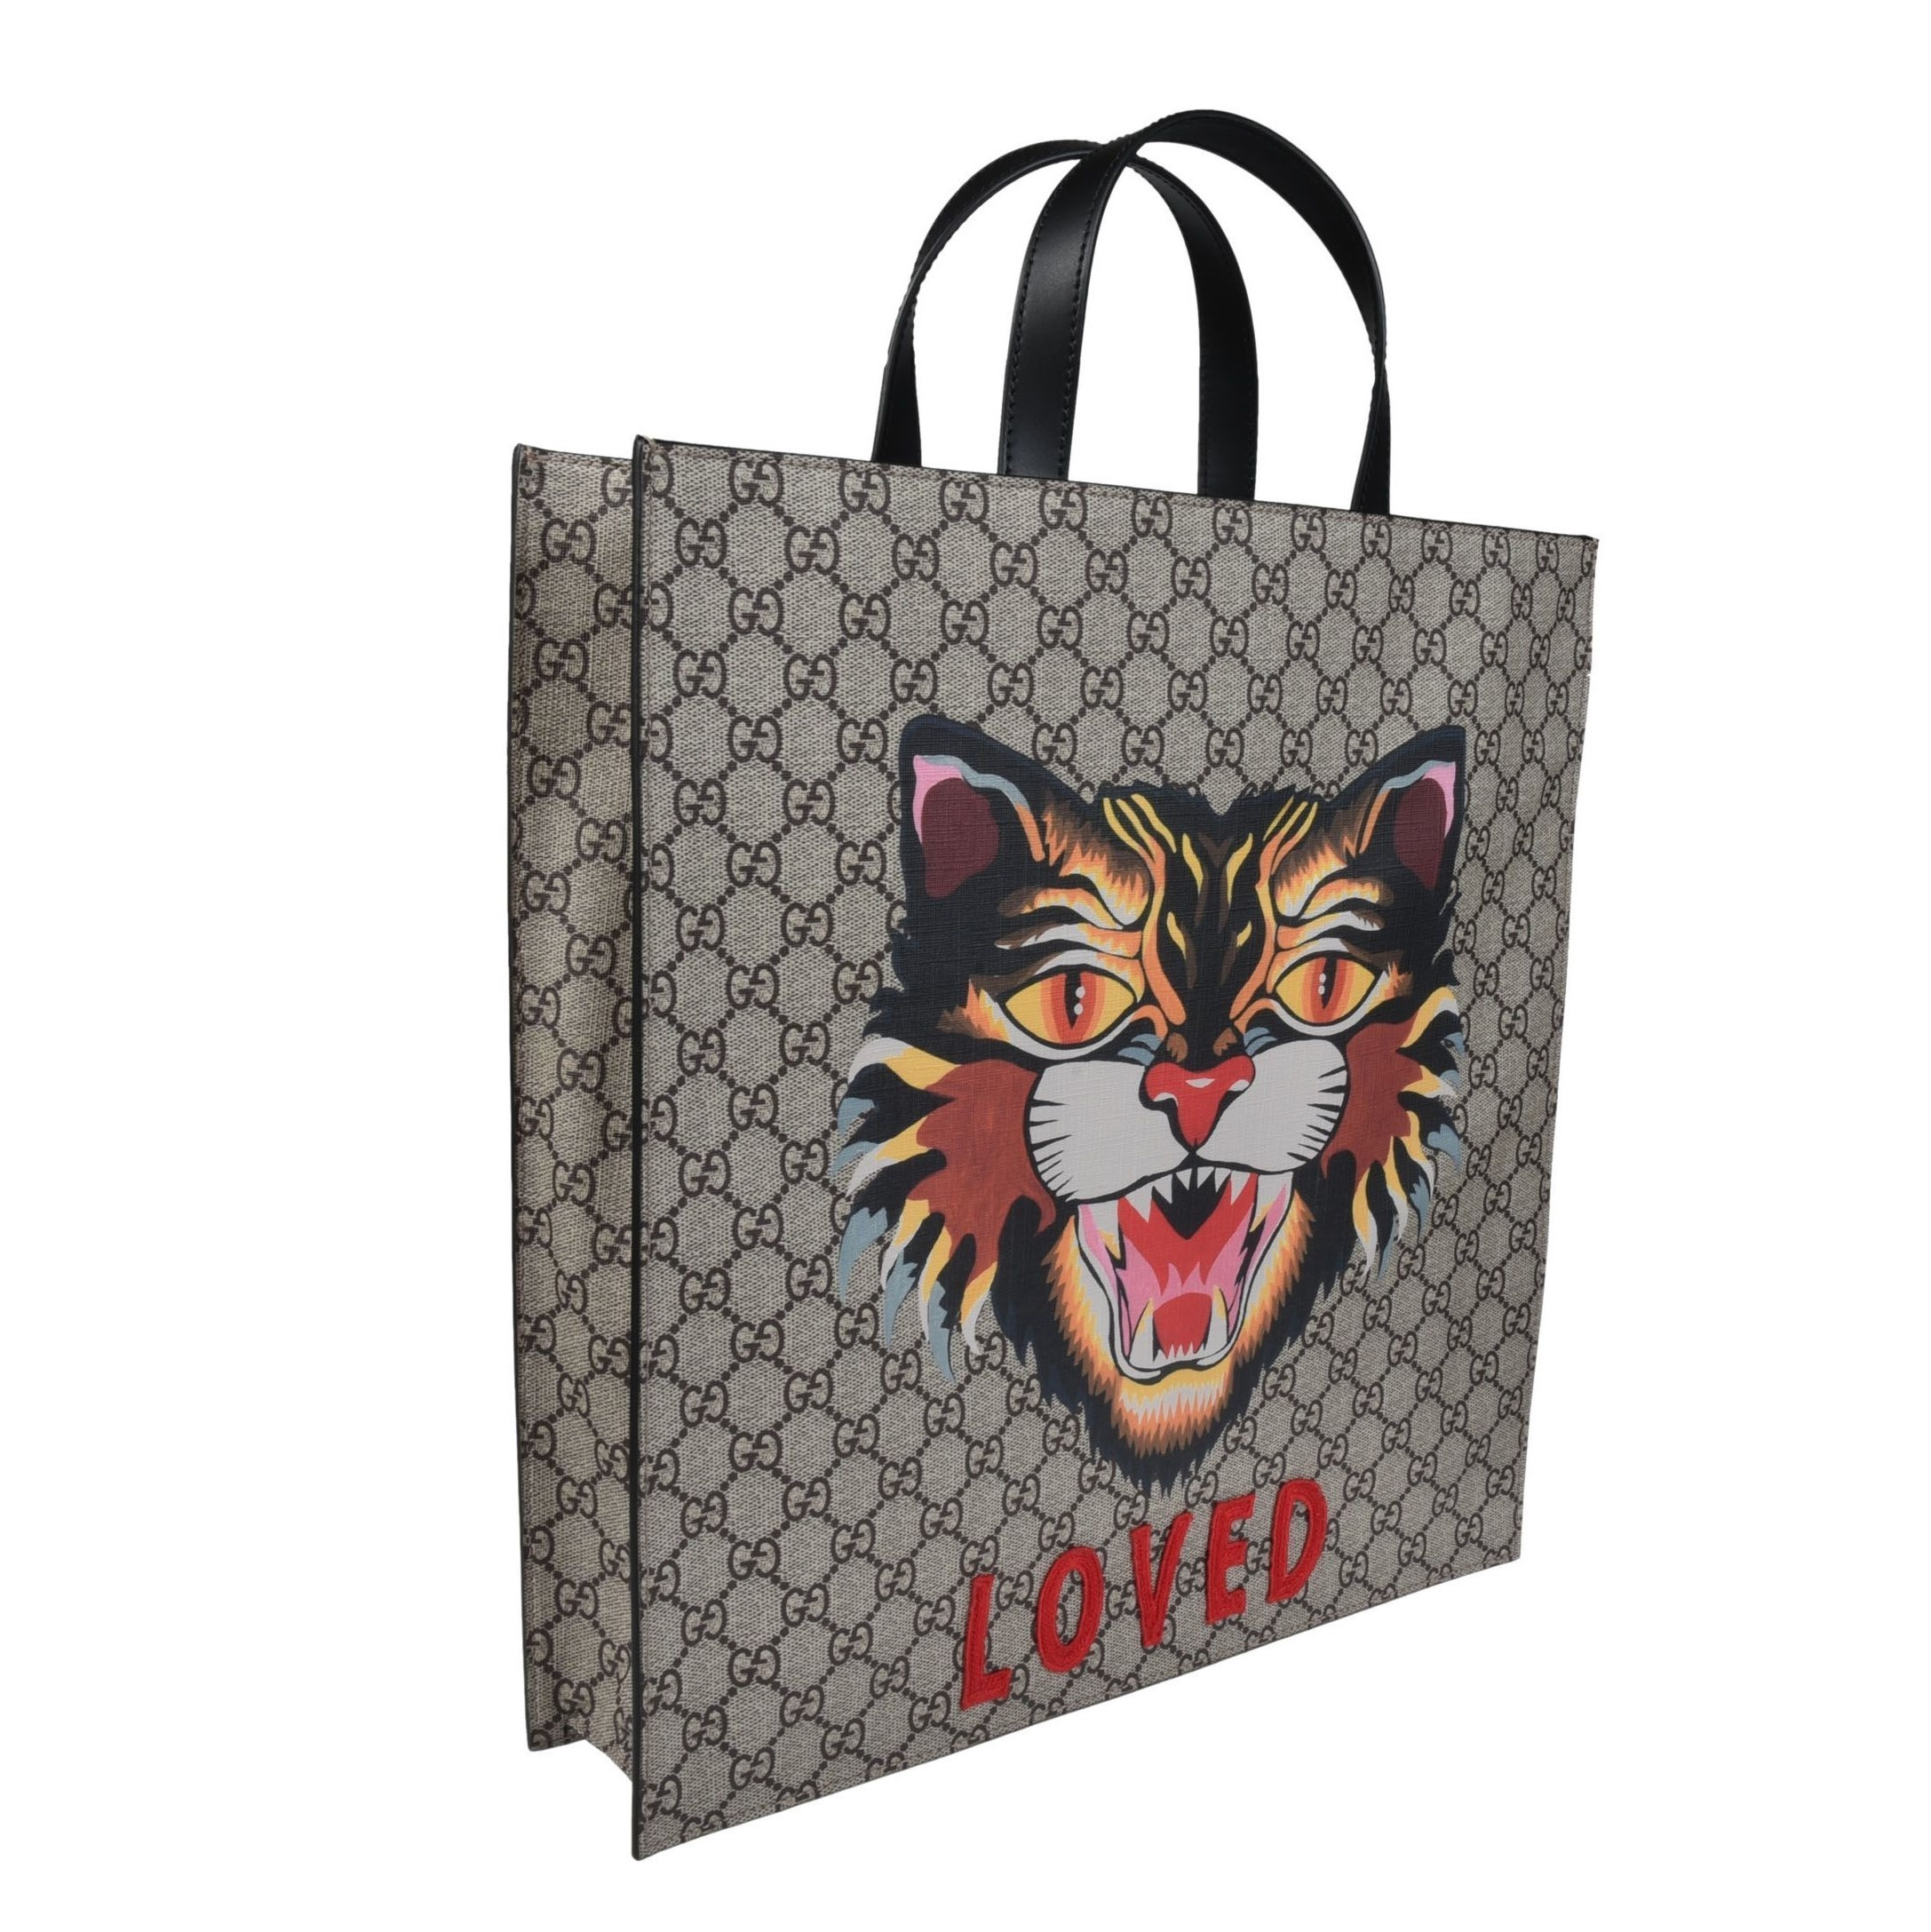 GUCCI(グッチ)猫のショッパーバッグ